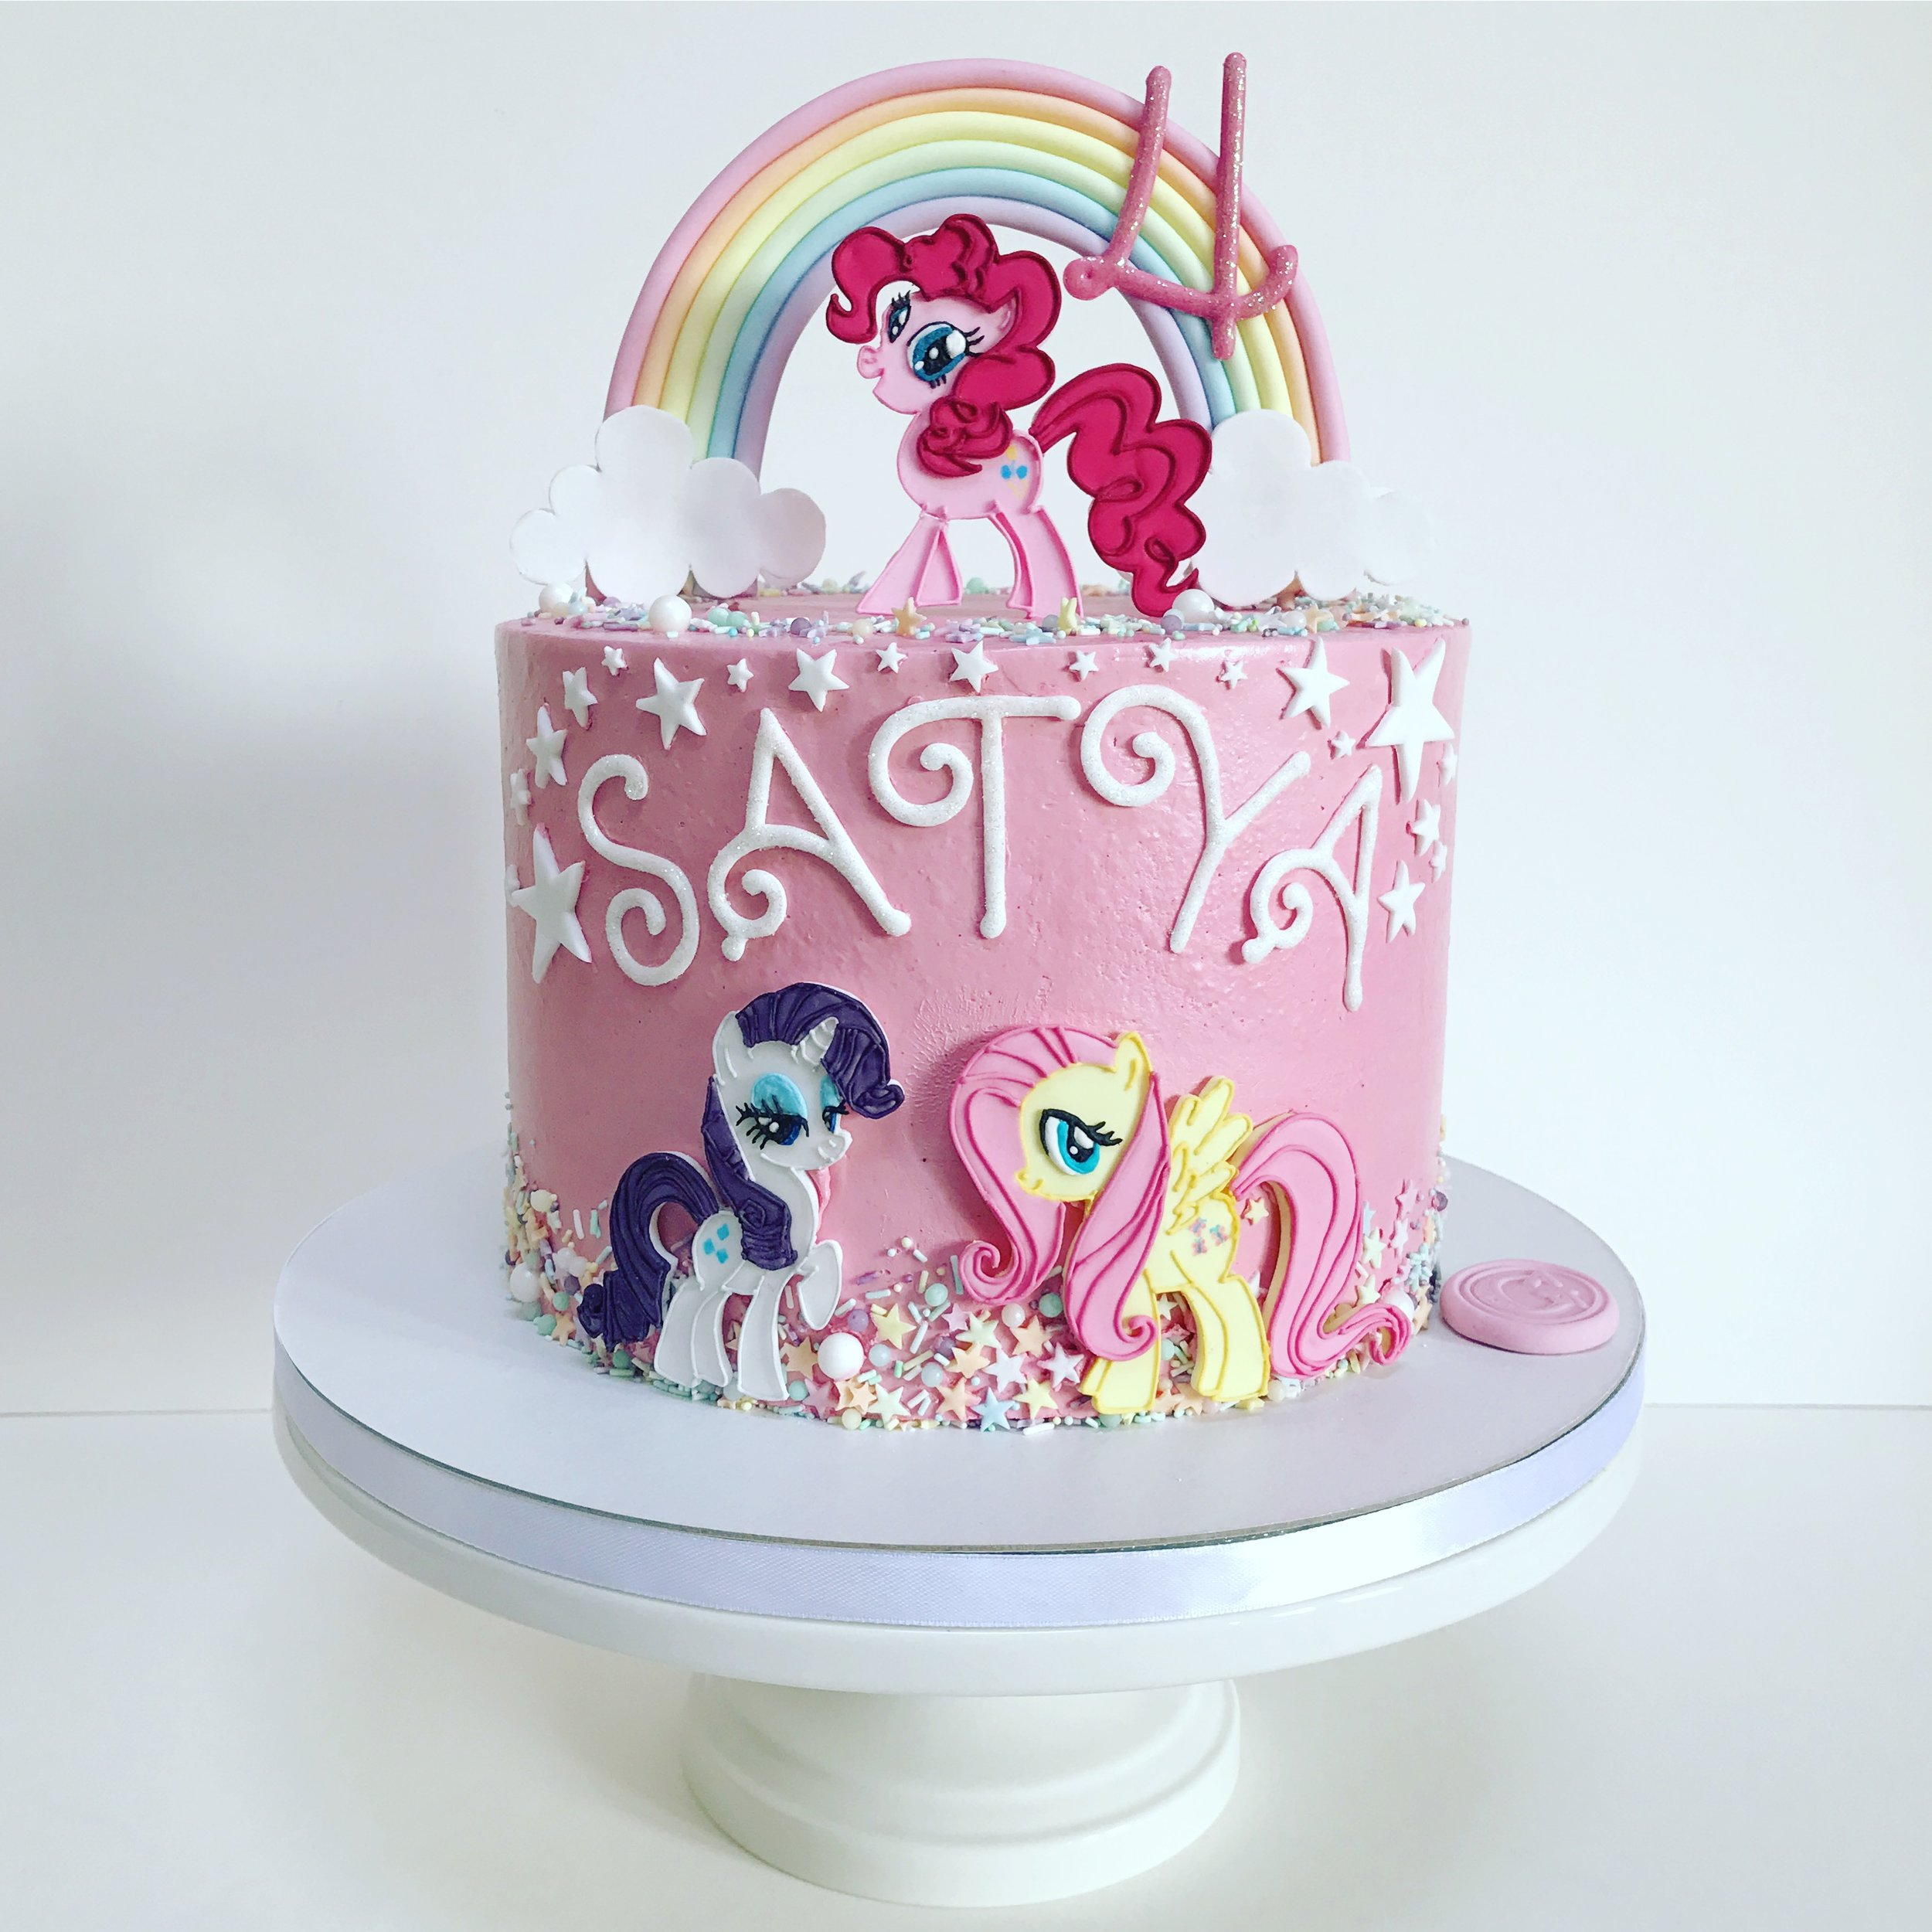 My Little Pony 4th Birthday Cake.JPG